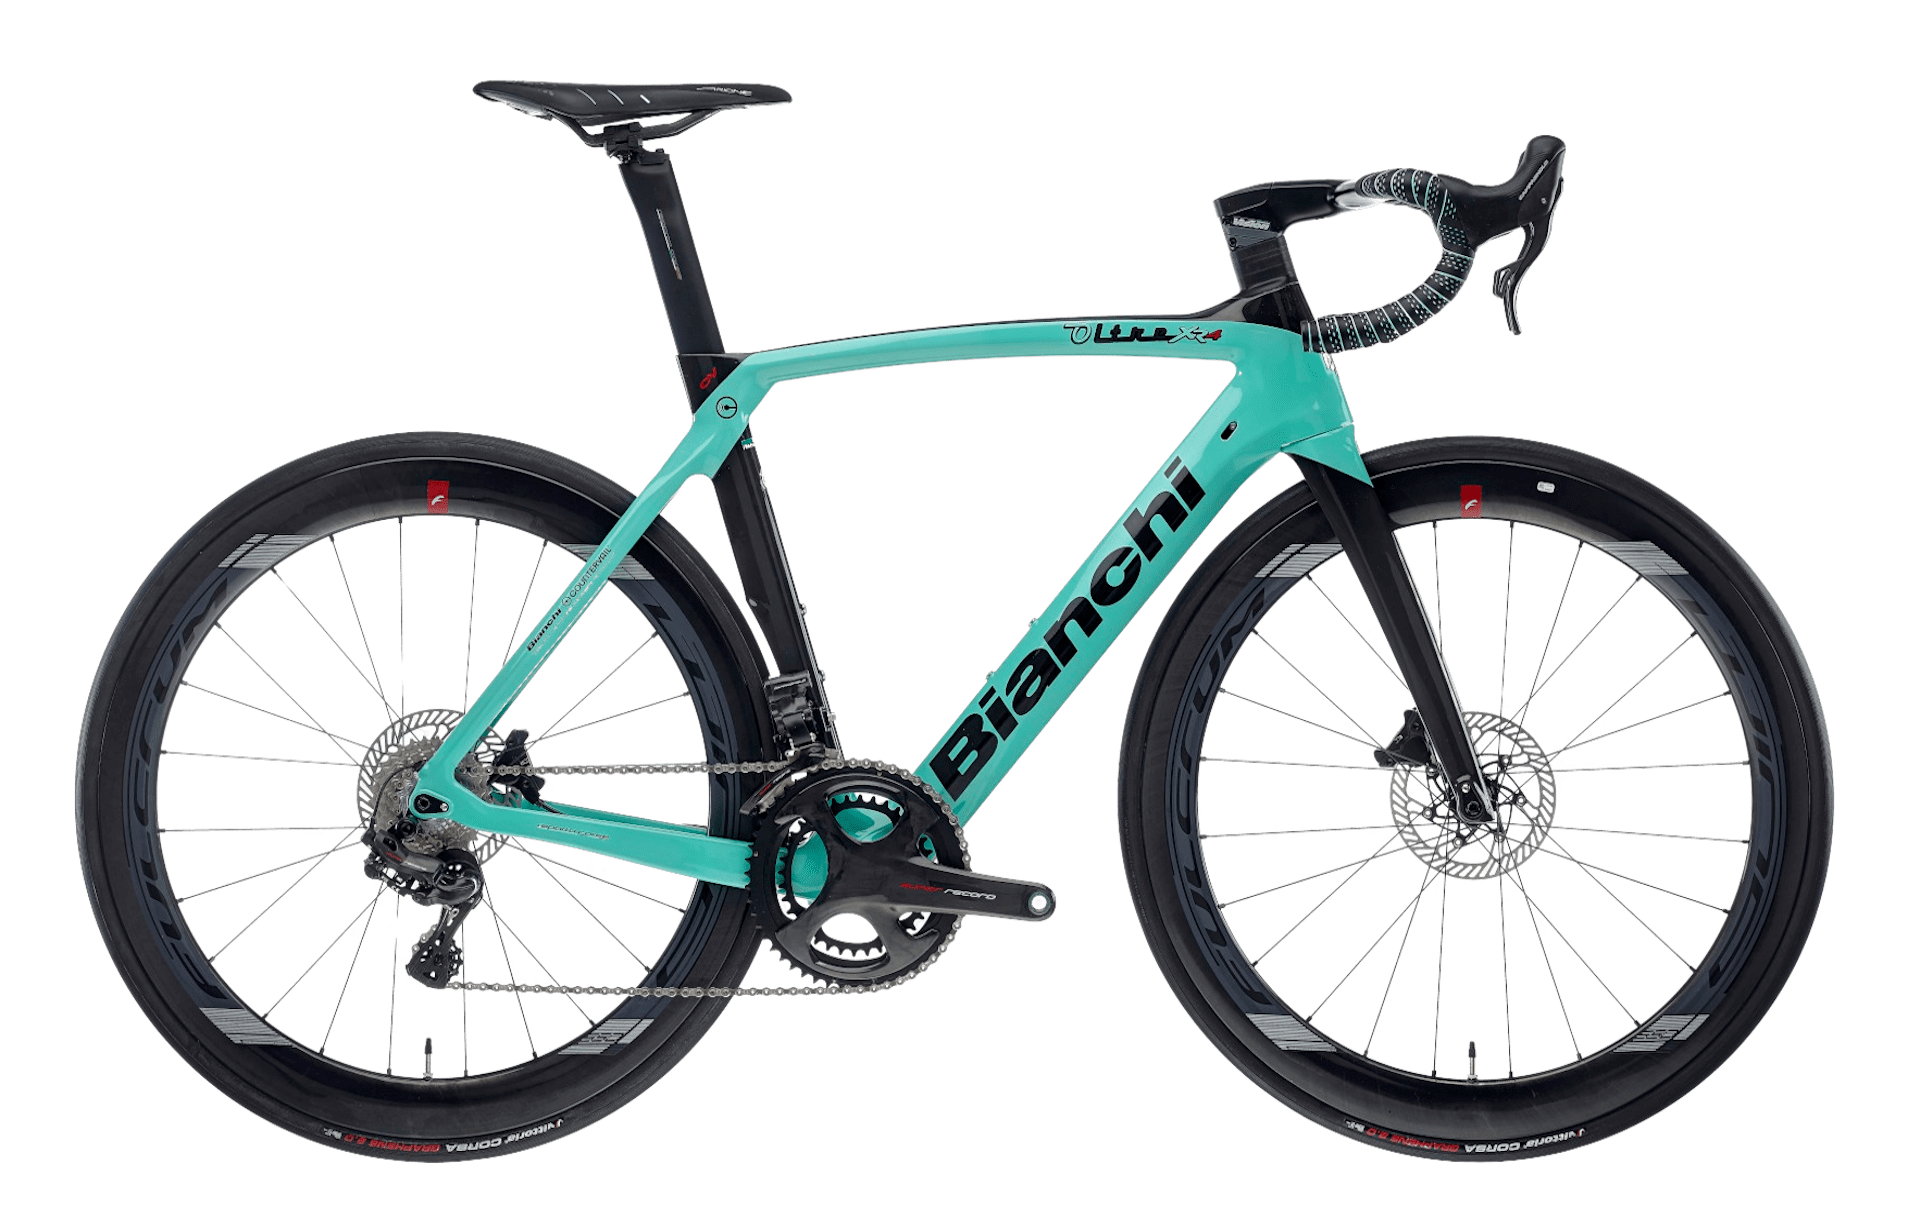 bianchi oltre xr4 campagnolo racefiets